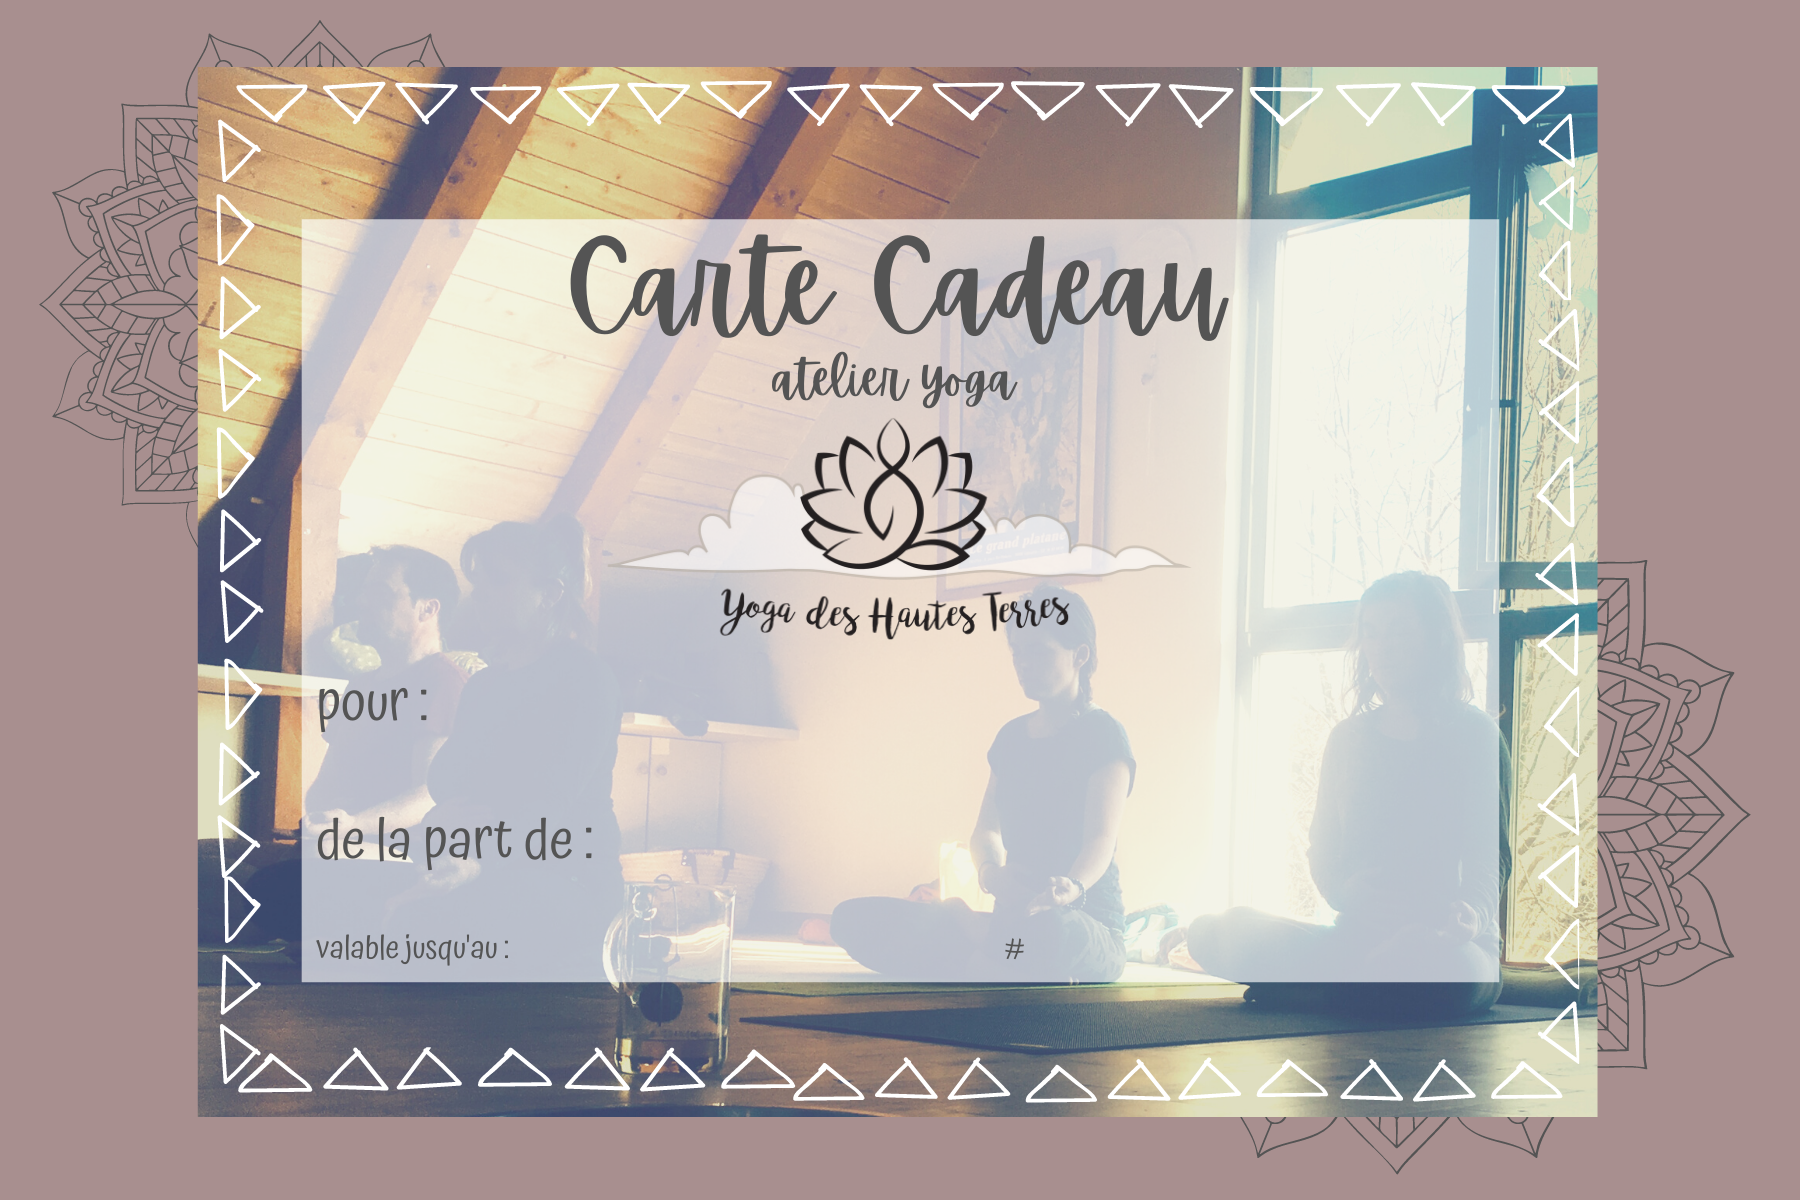 carte cadeau yoga cantal -atelier